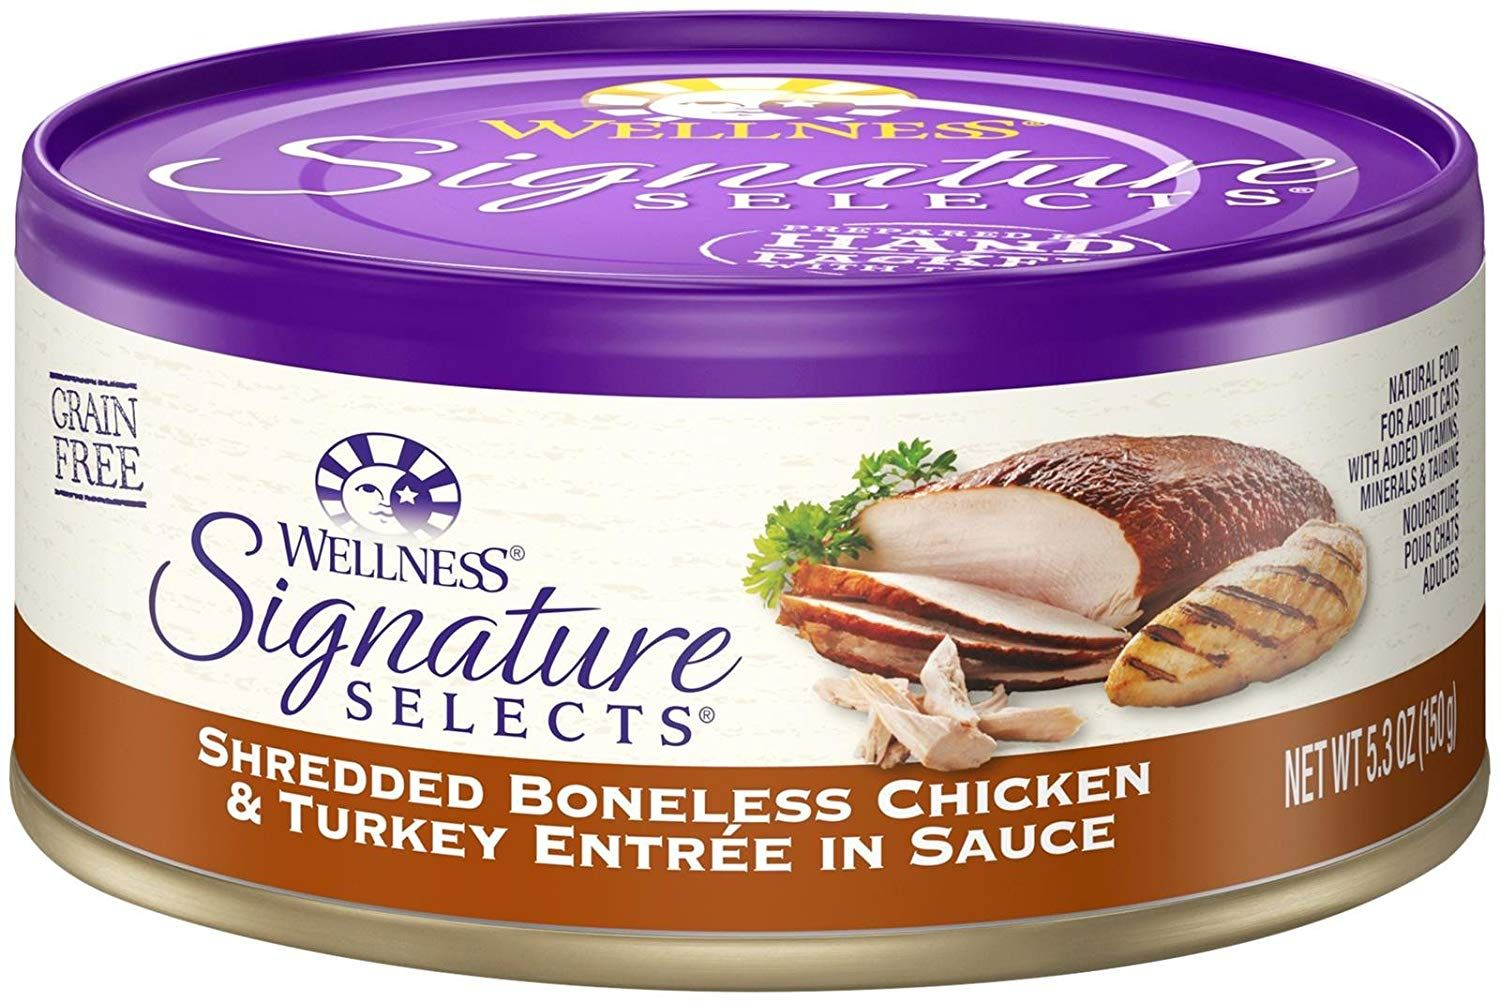 Wellness Signature Selects Shredded Chicken and Turkey